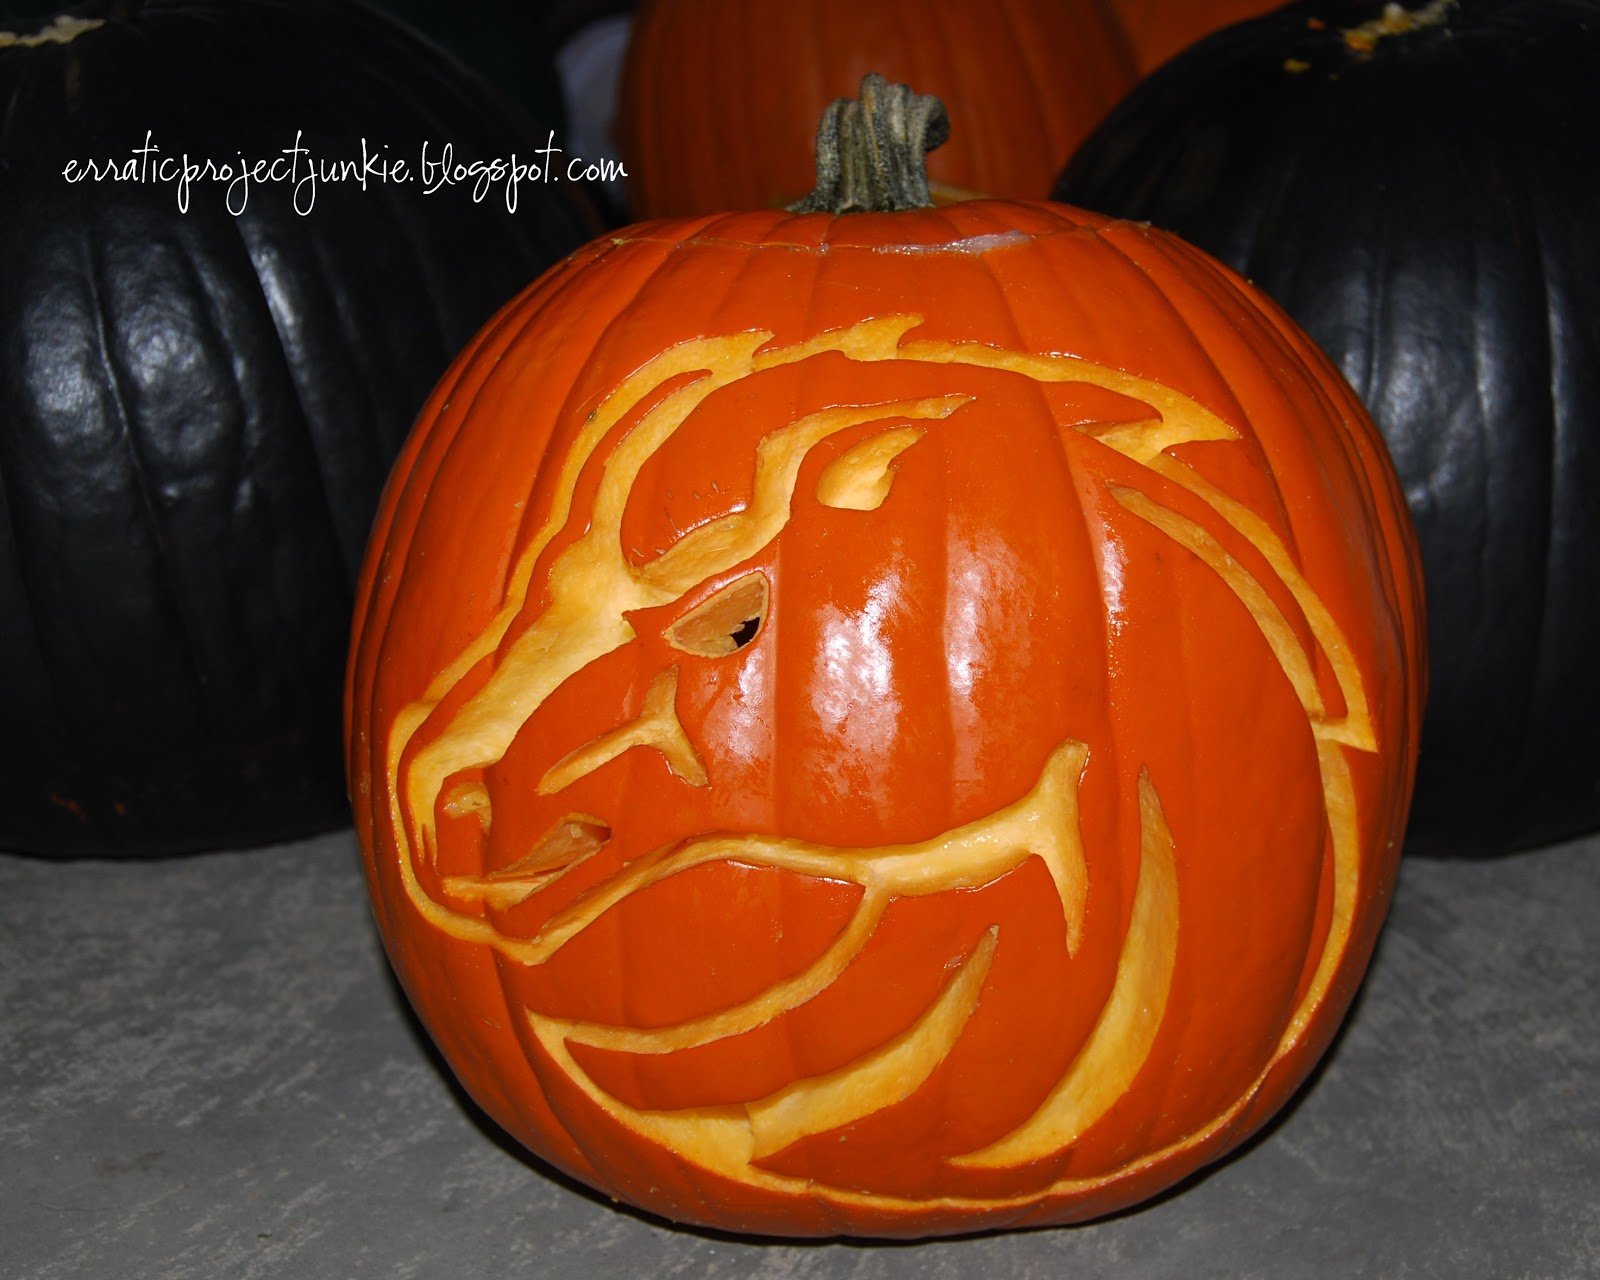 Erratic Project Junkie: Pumpkin Preview #5 - Continuation of the ...